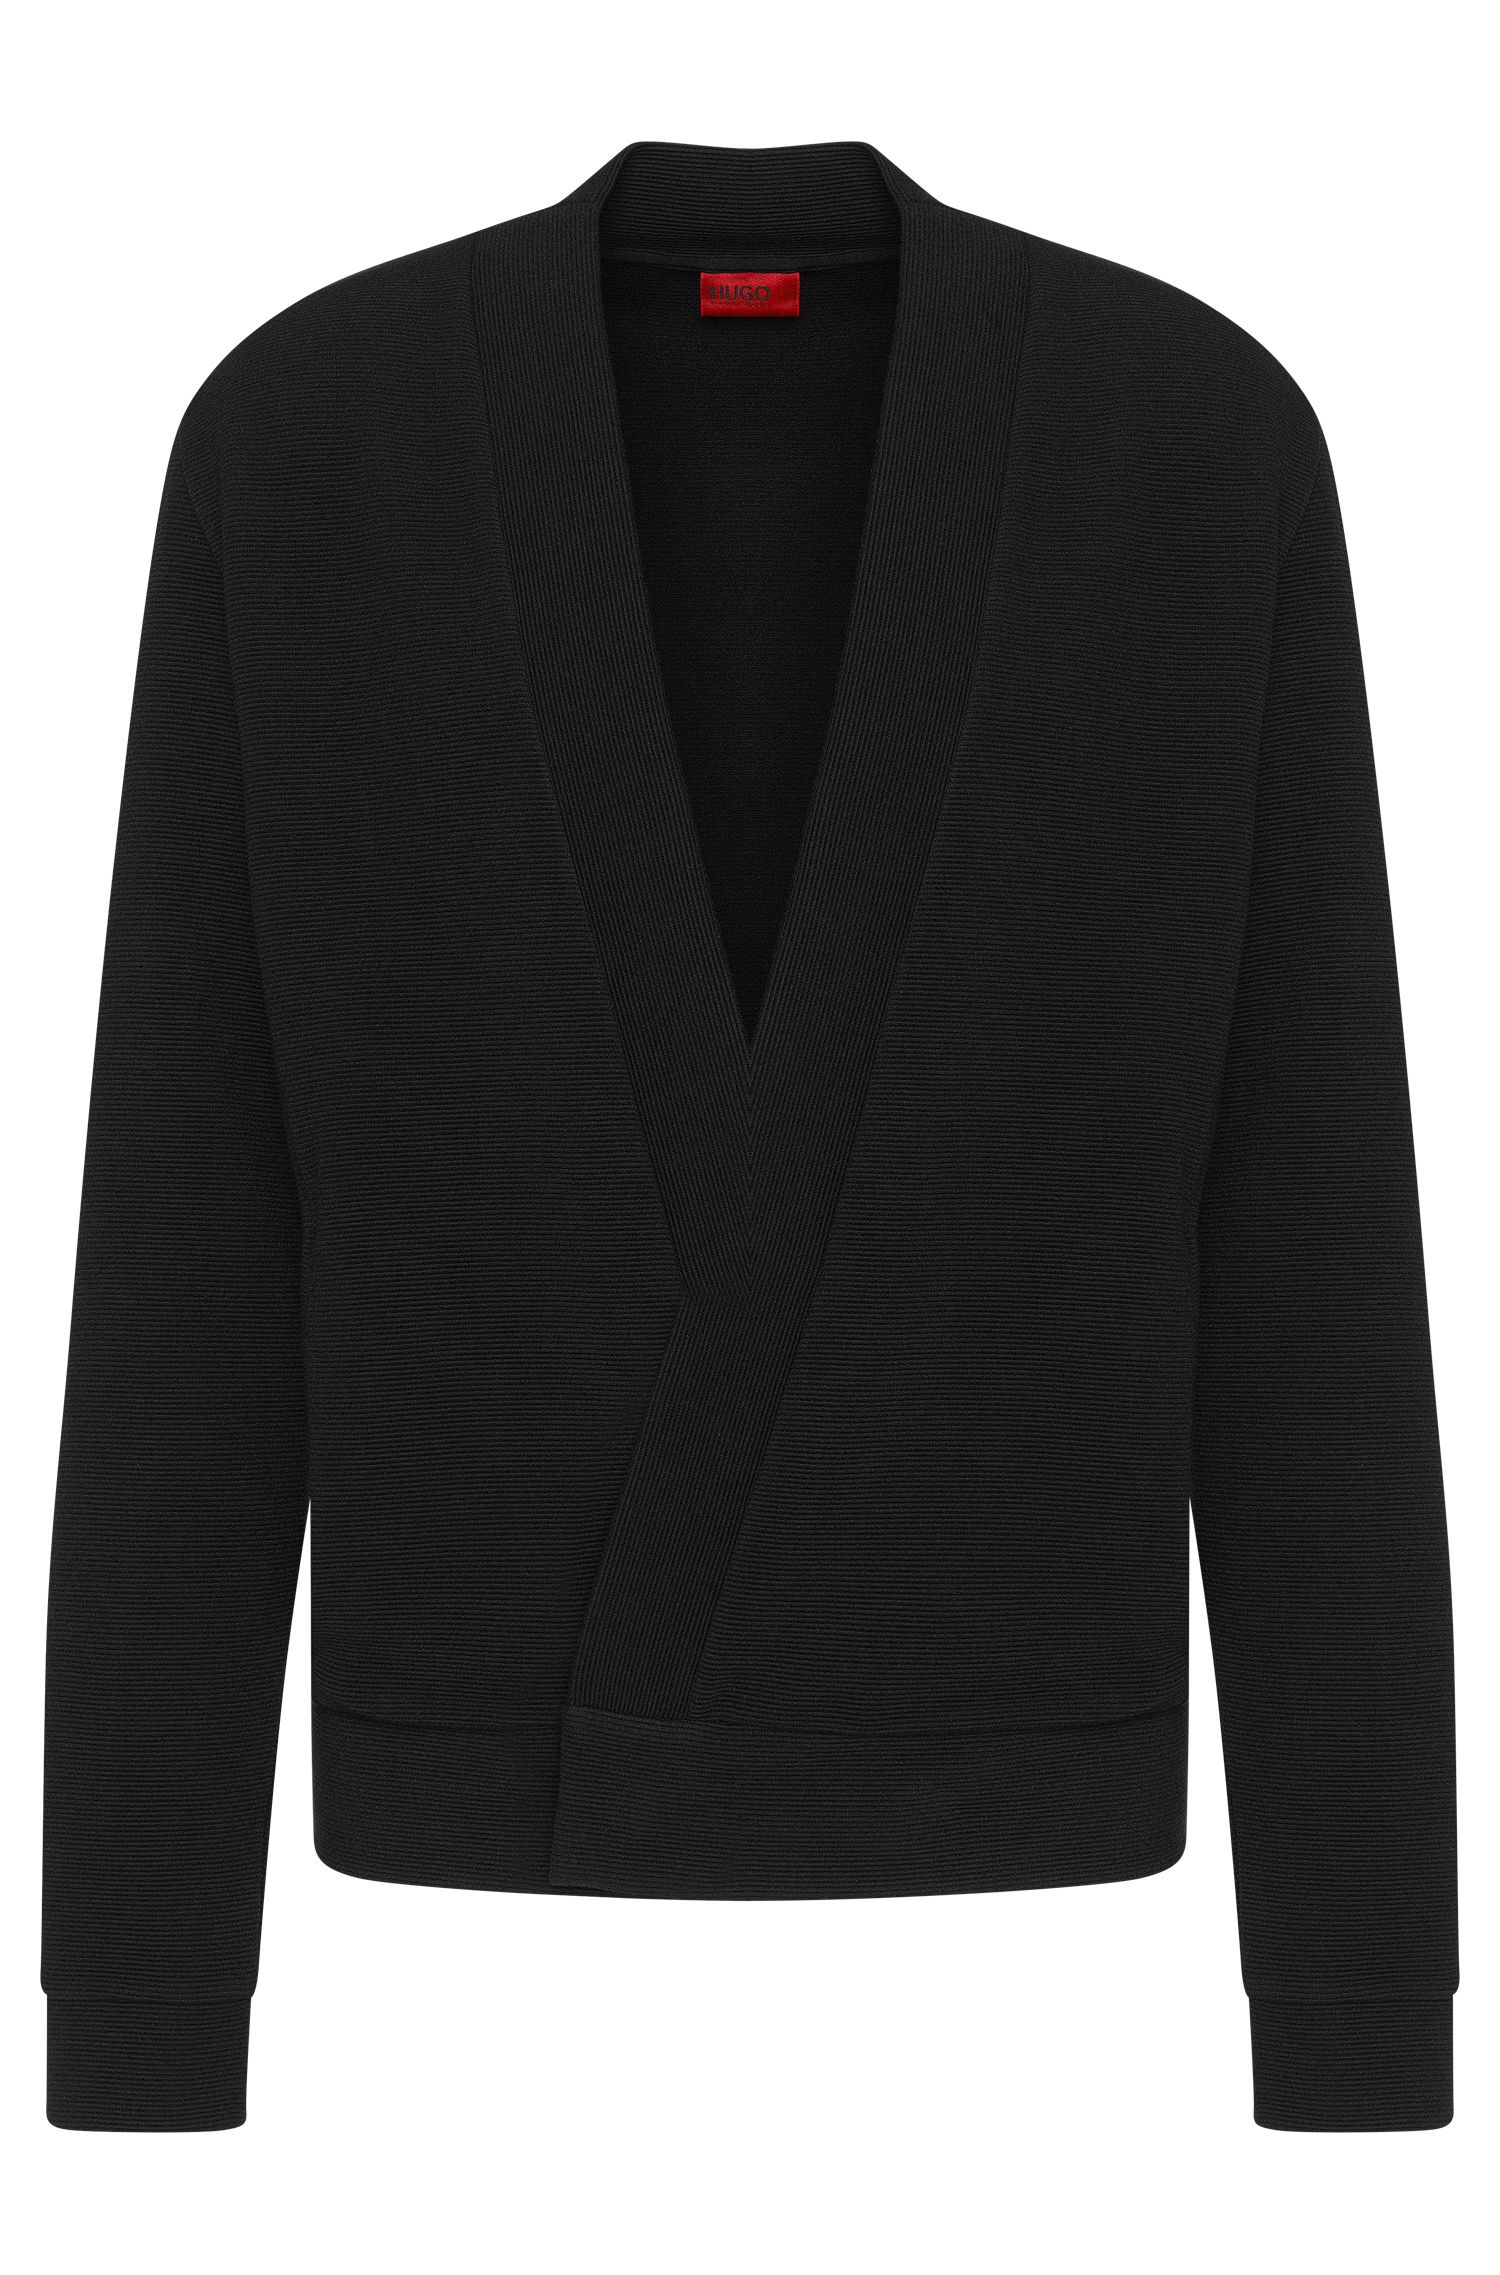 'Dimperial' | Stretch Viscose Ribbed Surplice Cardigan